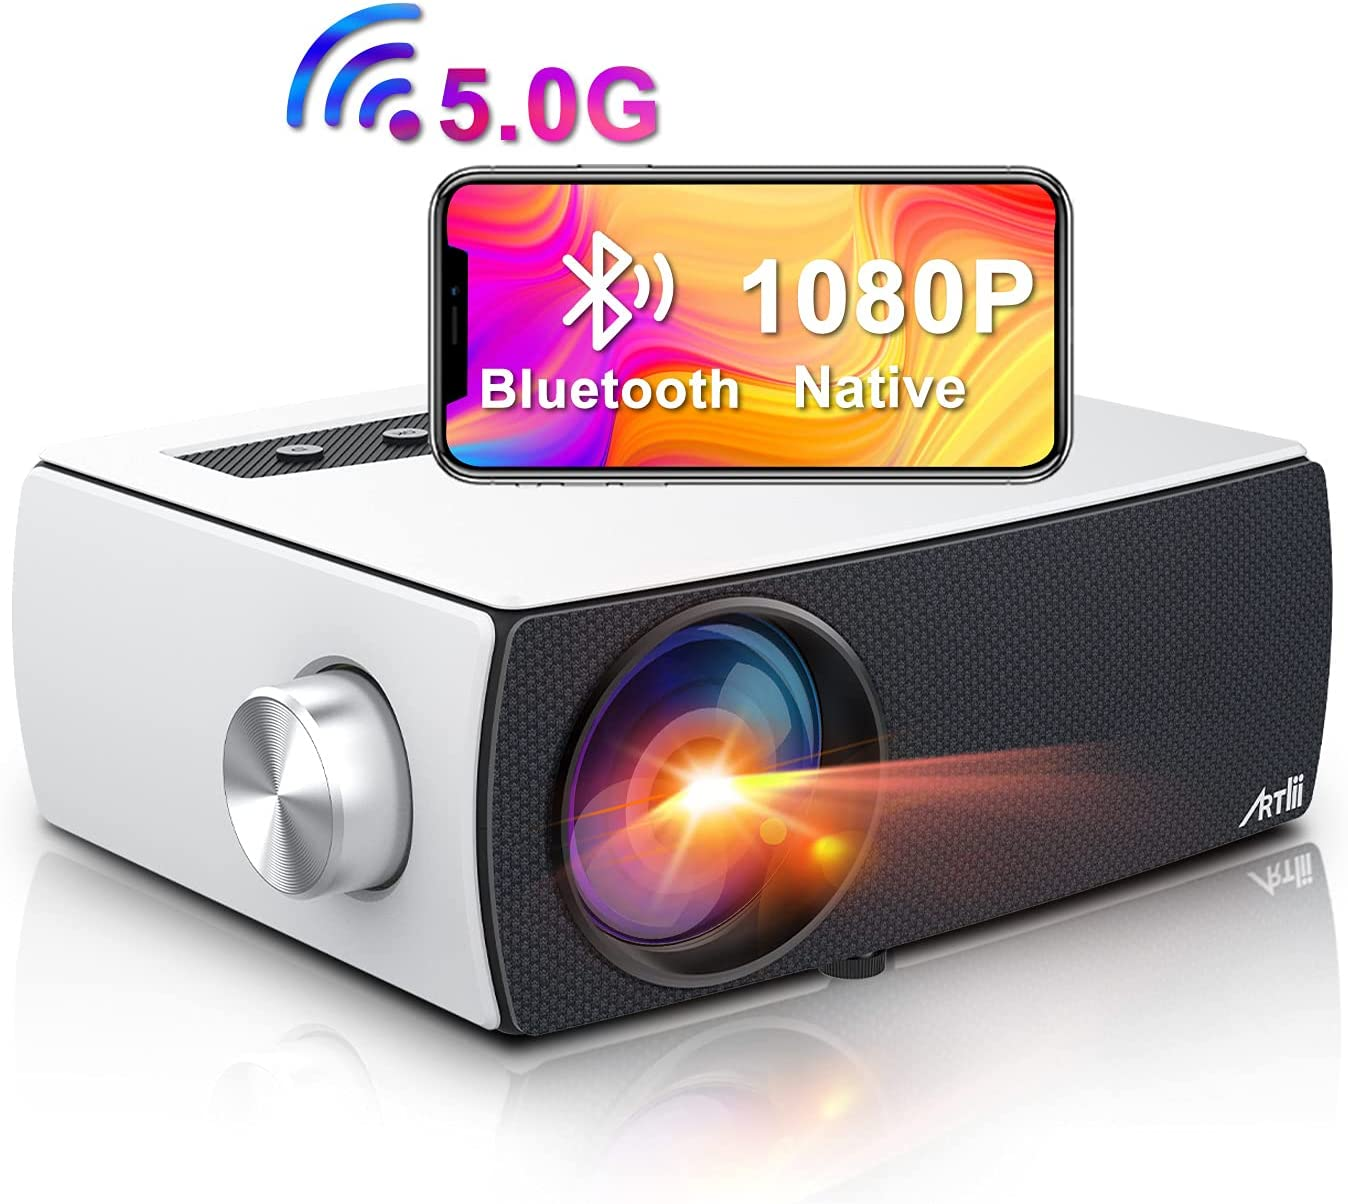 Portable 5G WiFi Bluetooth Projector, Artlii Enjoy 3 Native 1080P Outdoor Projector, Full HD Projector Supports Zoom & Keystone, Compatible with TV Stick/iOS/Android/PS4/PPT/HDMI/USB